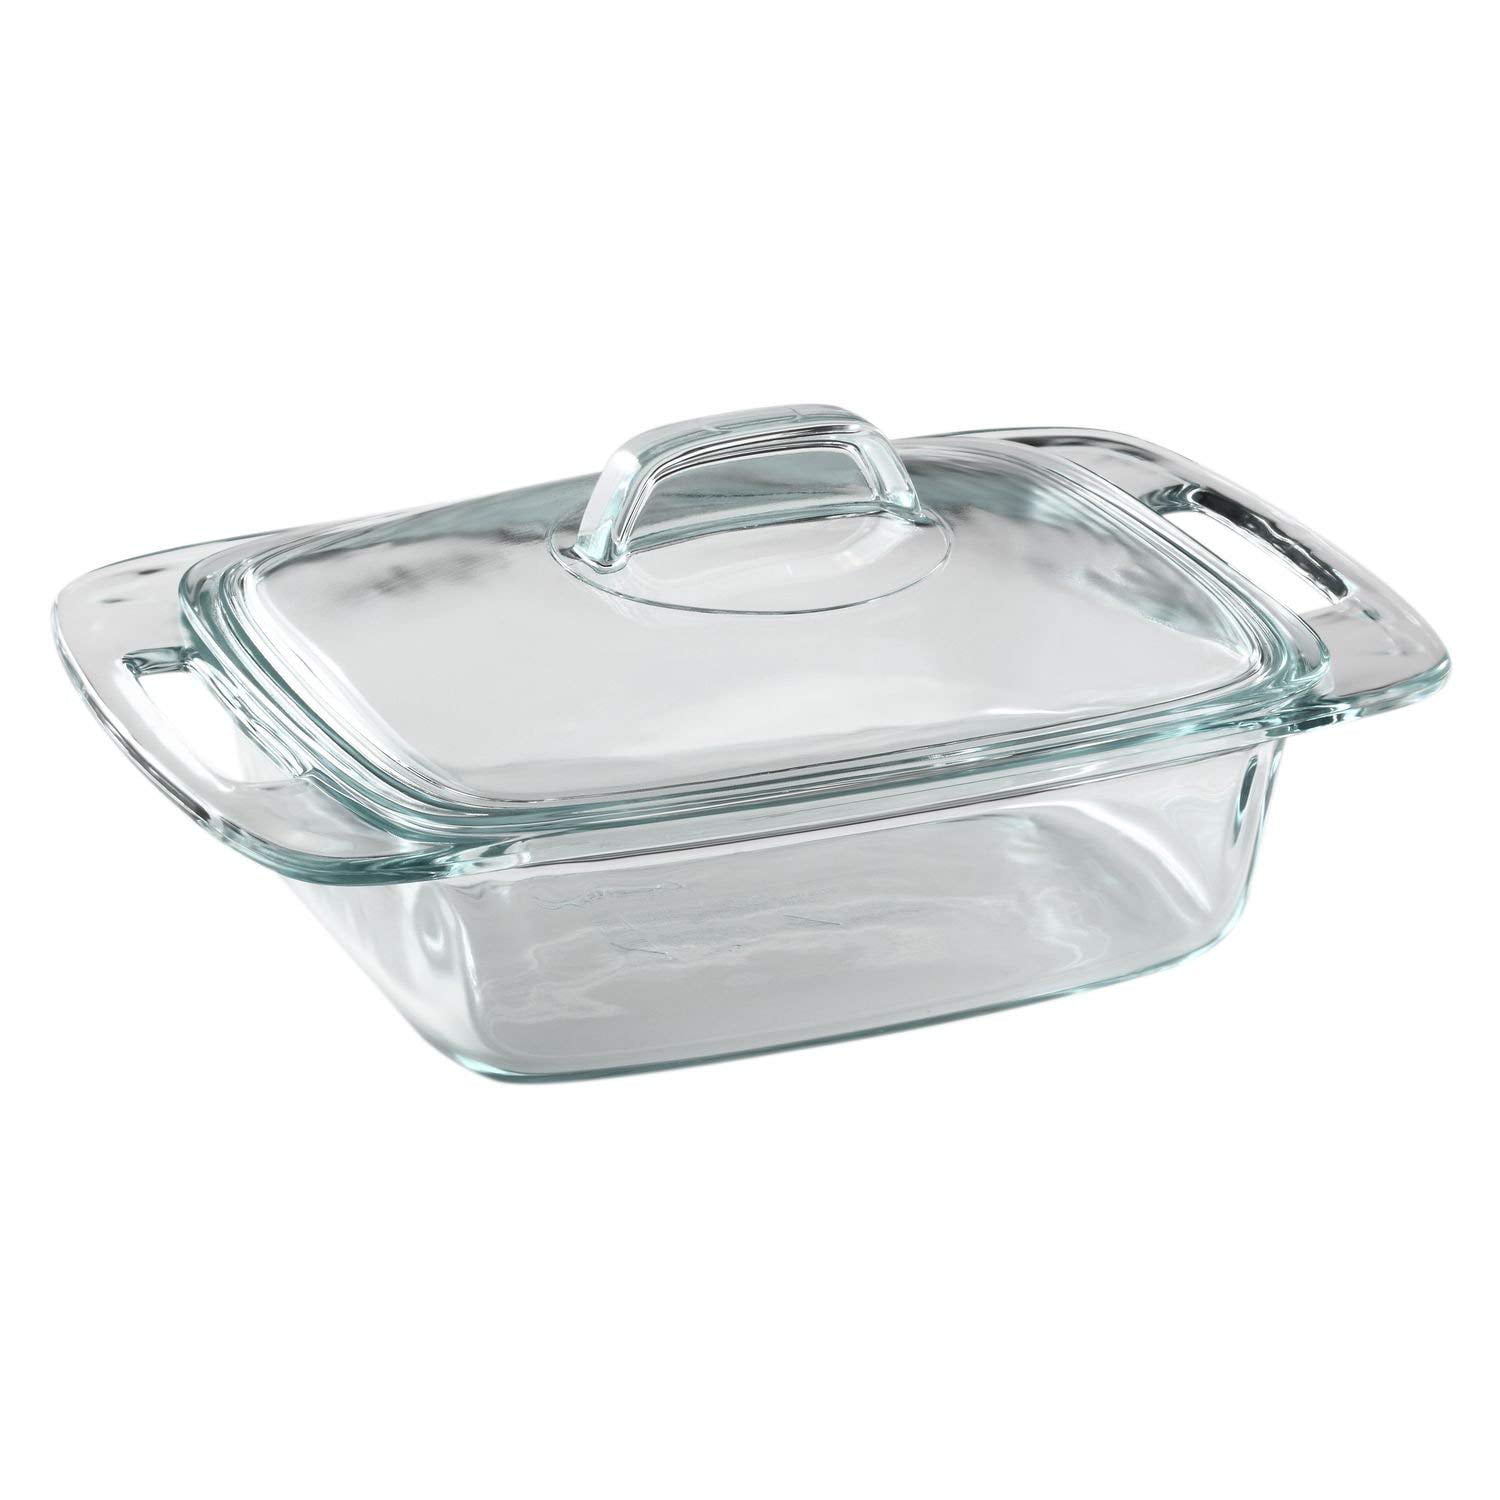 Bakeware 2-Quart Casserole Dish with Lid (Rectangular w Large Handles), 2-quart small glass casserole dish... by